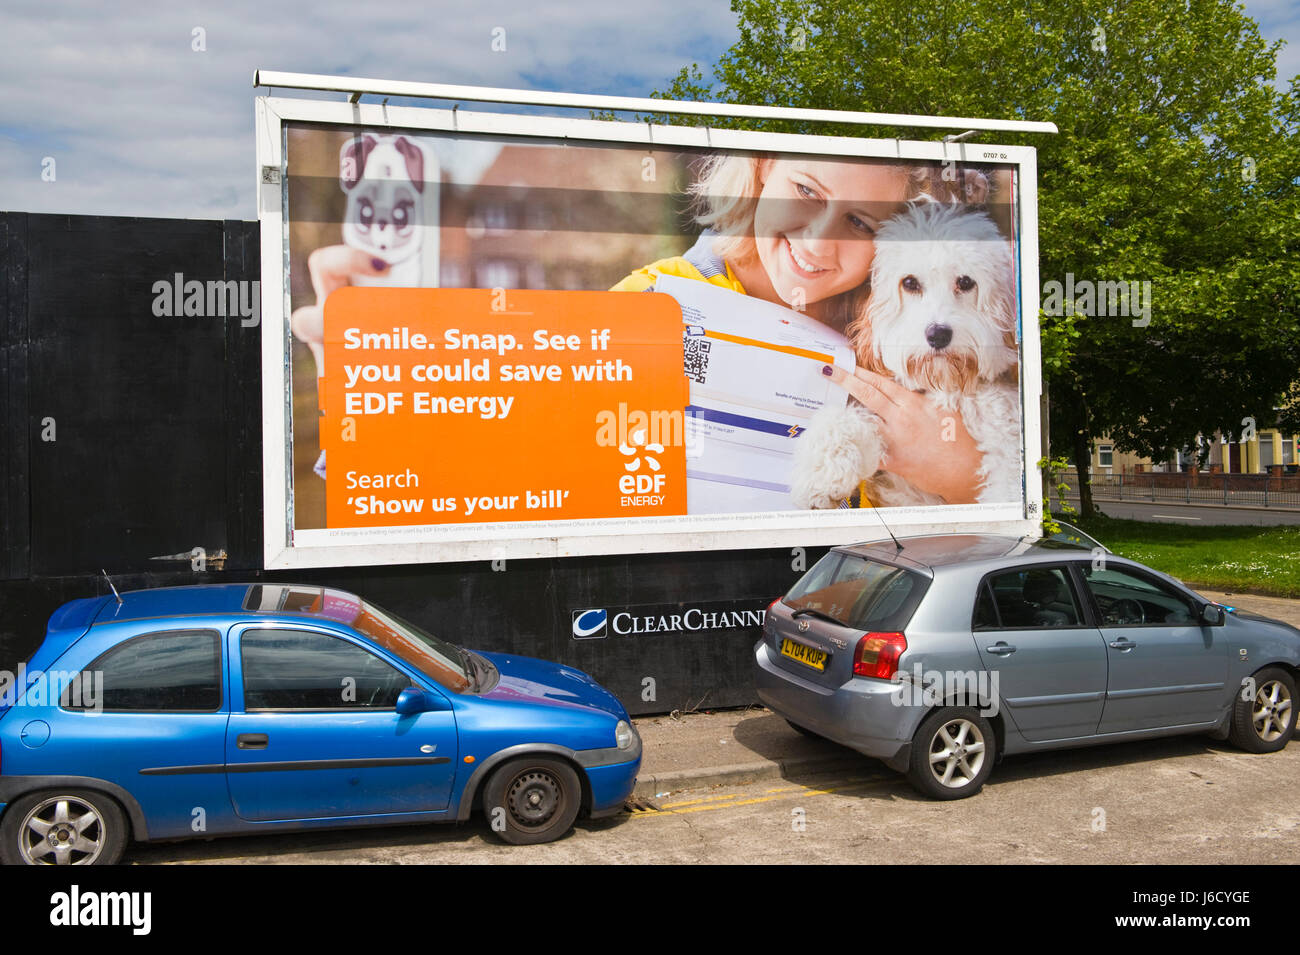 EDF Energy 48 sheet poster advertising billboard on ClearChannel site in Newport, South Wales, UK - Stock Image